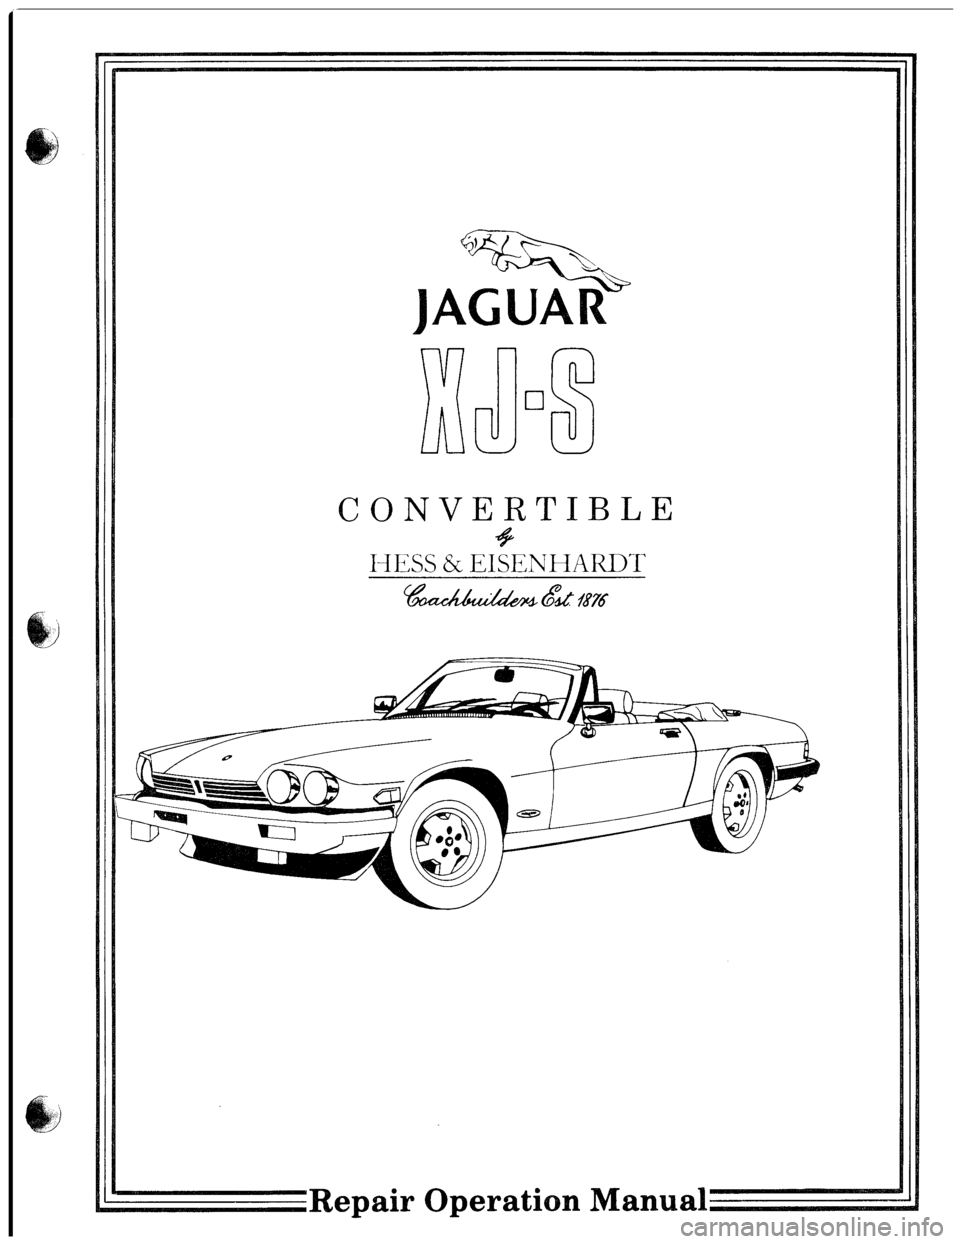 JAGUAR XJS 1980 1.G Workshop Manual